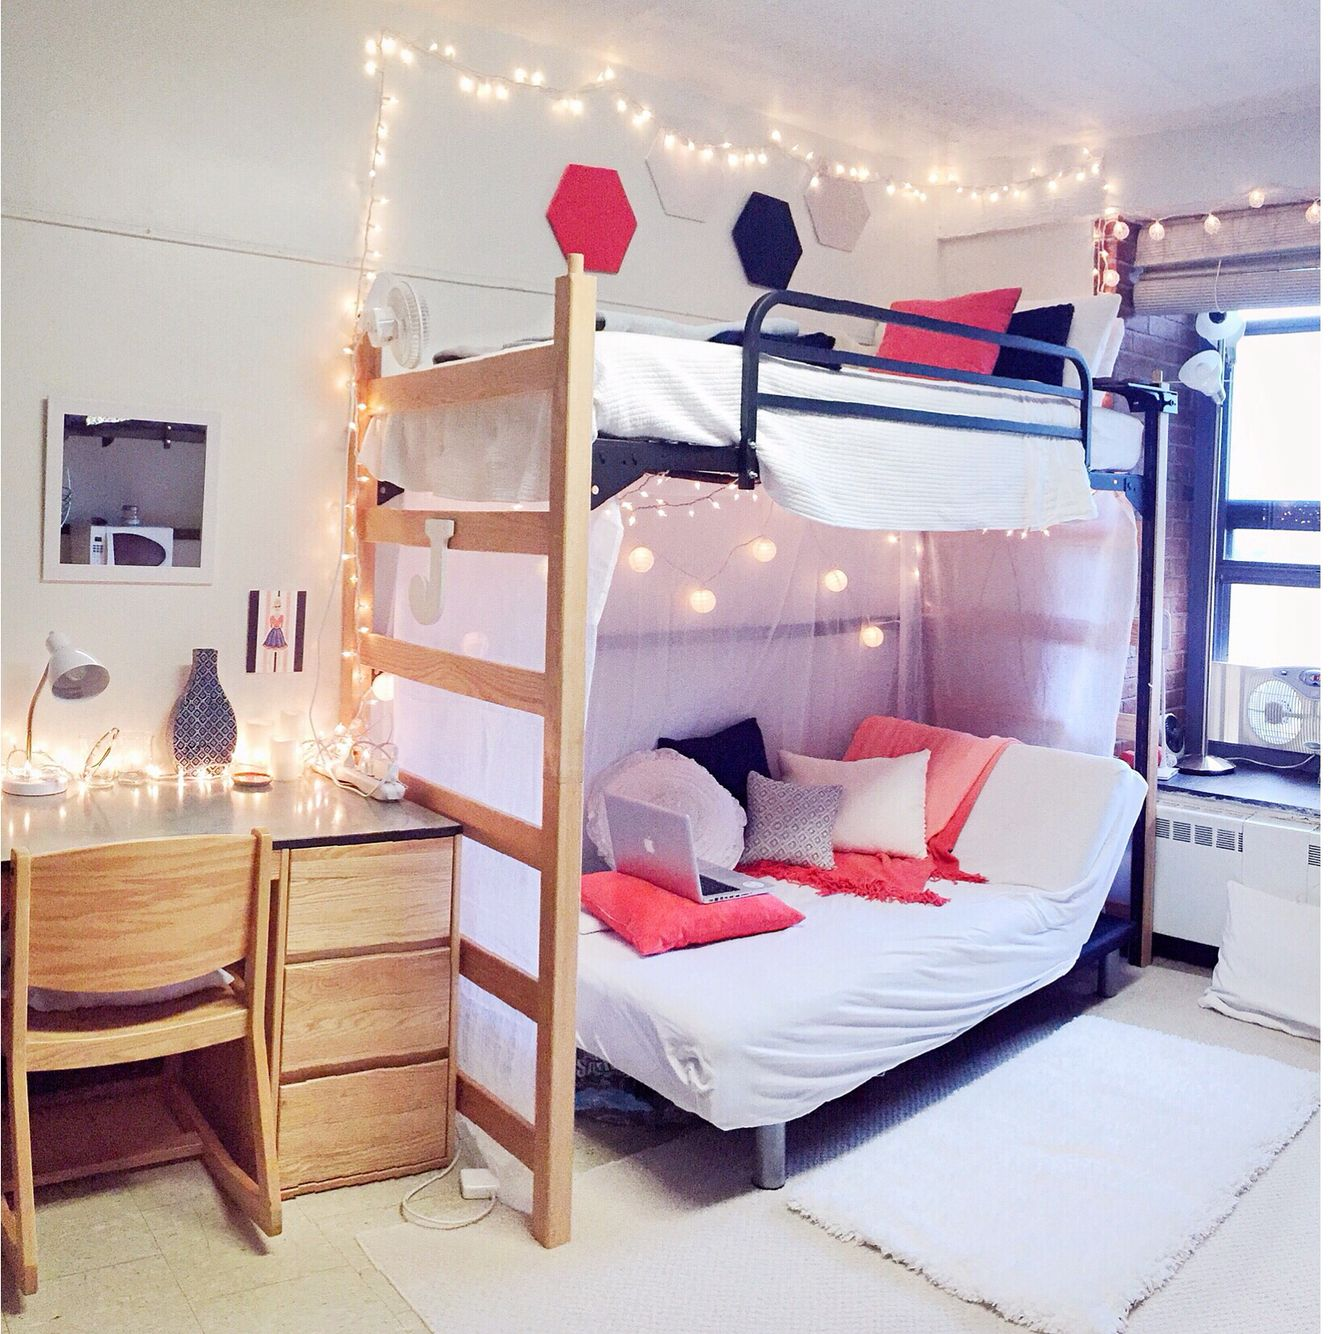 Room And Board At Uconn